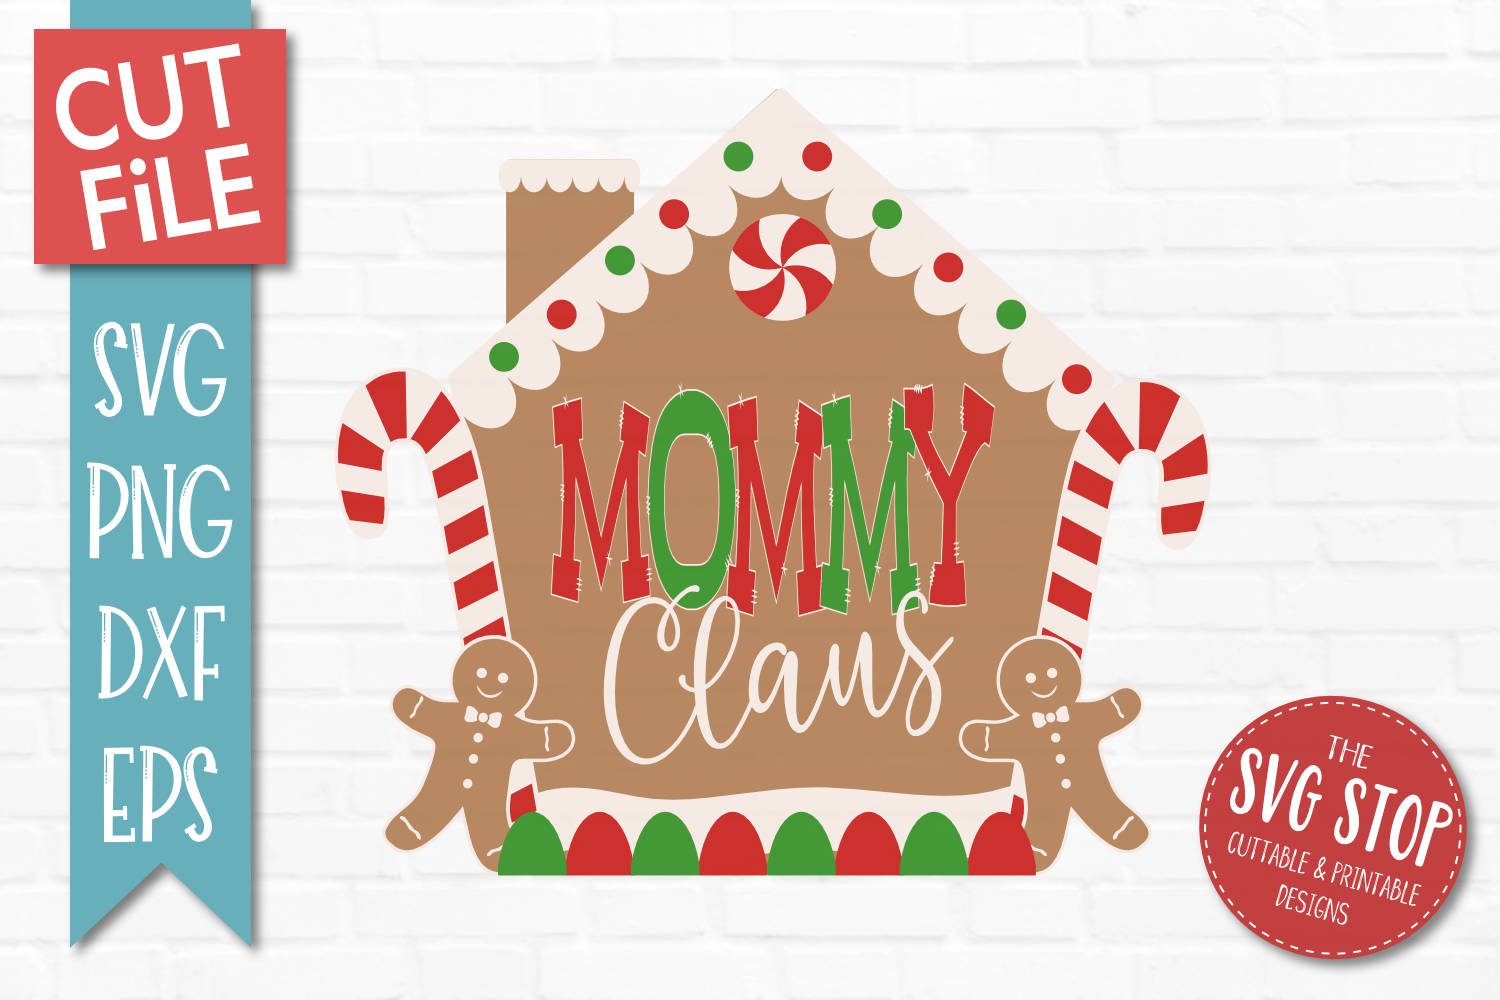 Mommy Claus Gingerbread Christmas SVG, PNG, DXF, EPS example image 1